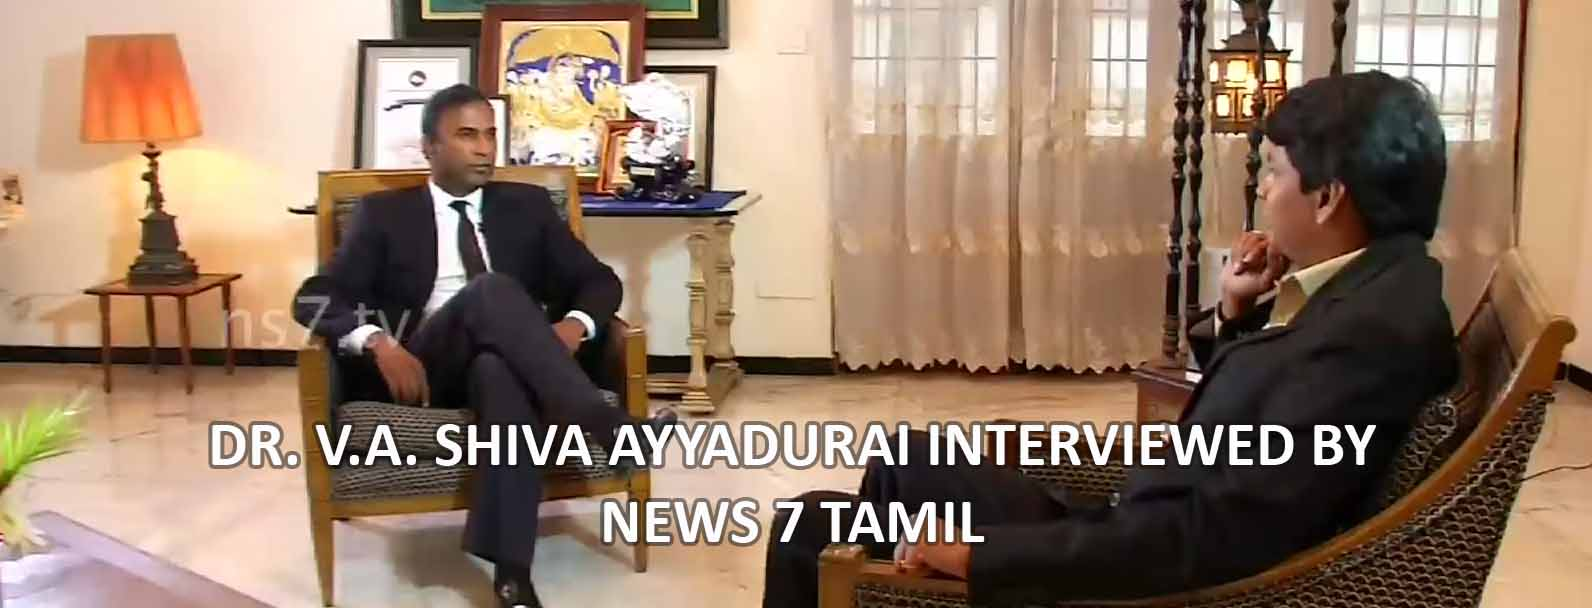 Dr. V.A. Shiva Ayyadurai Interviewed By News 7 Tamil TV Channel